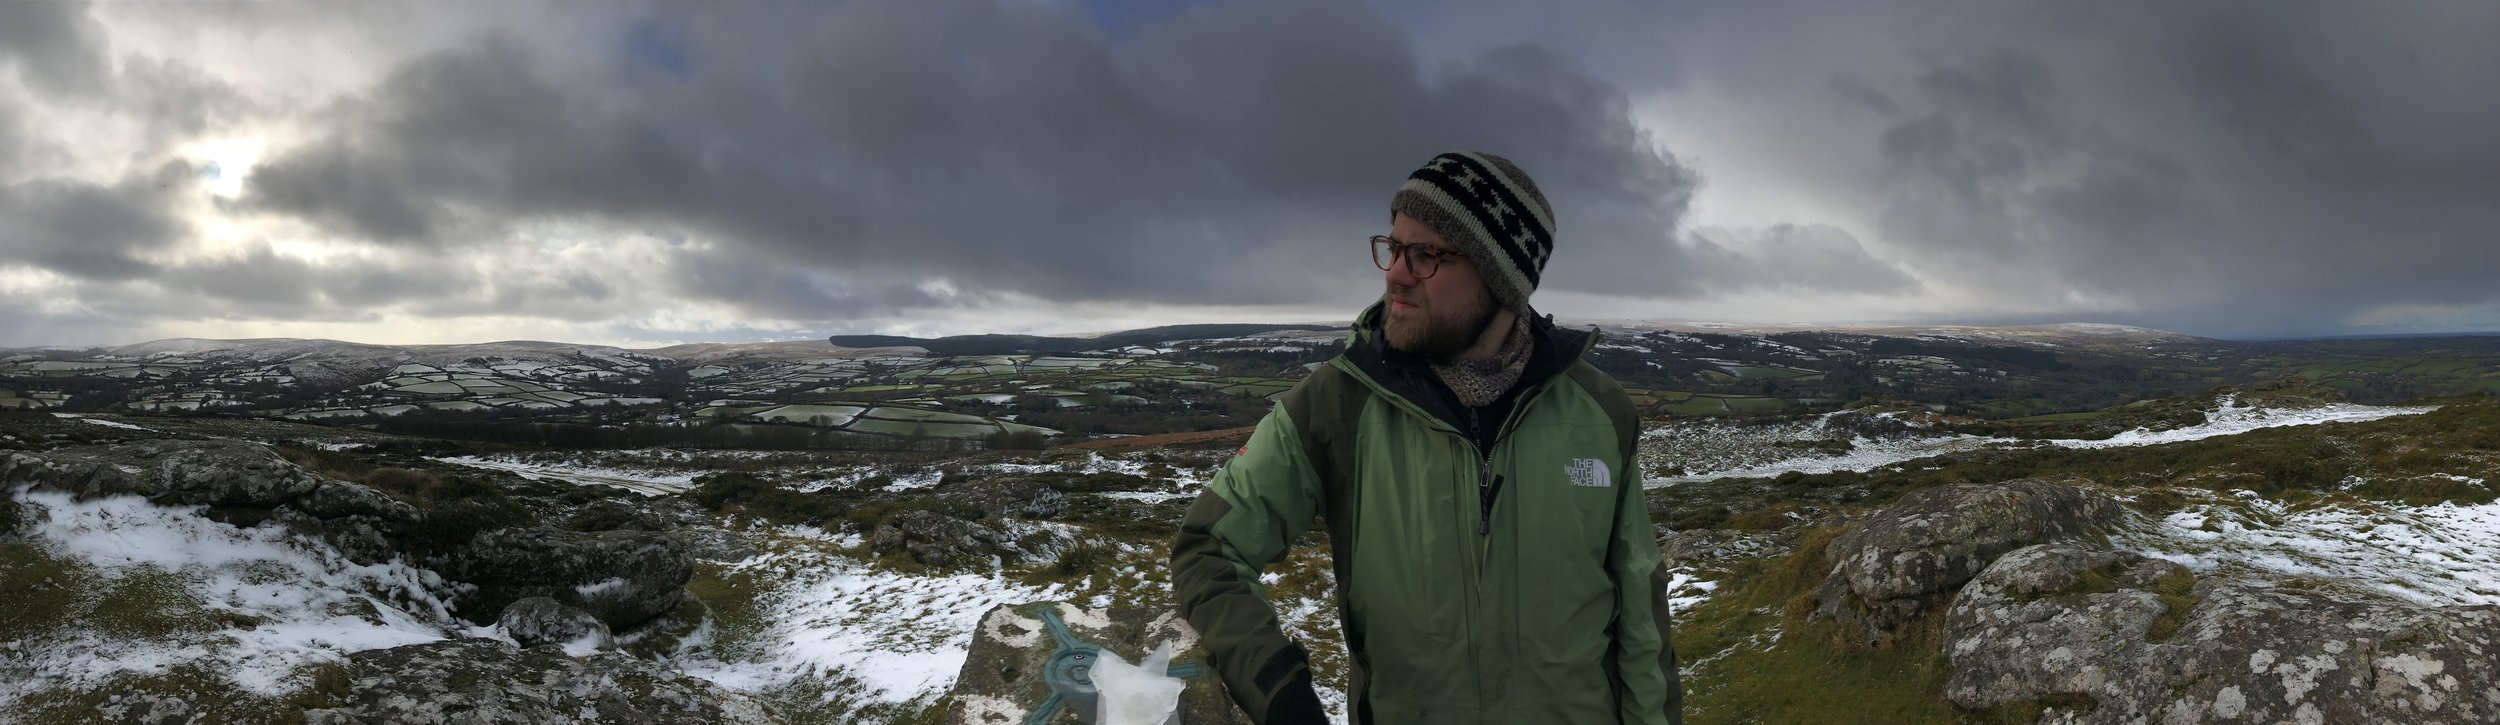 Joe at the top of Meldon Hill with views of Tors to the South